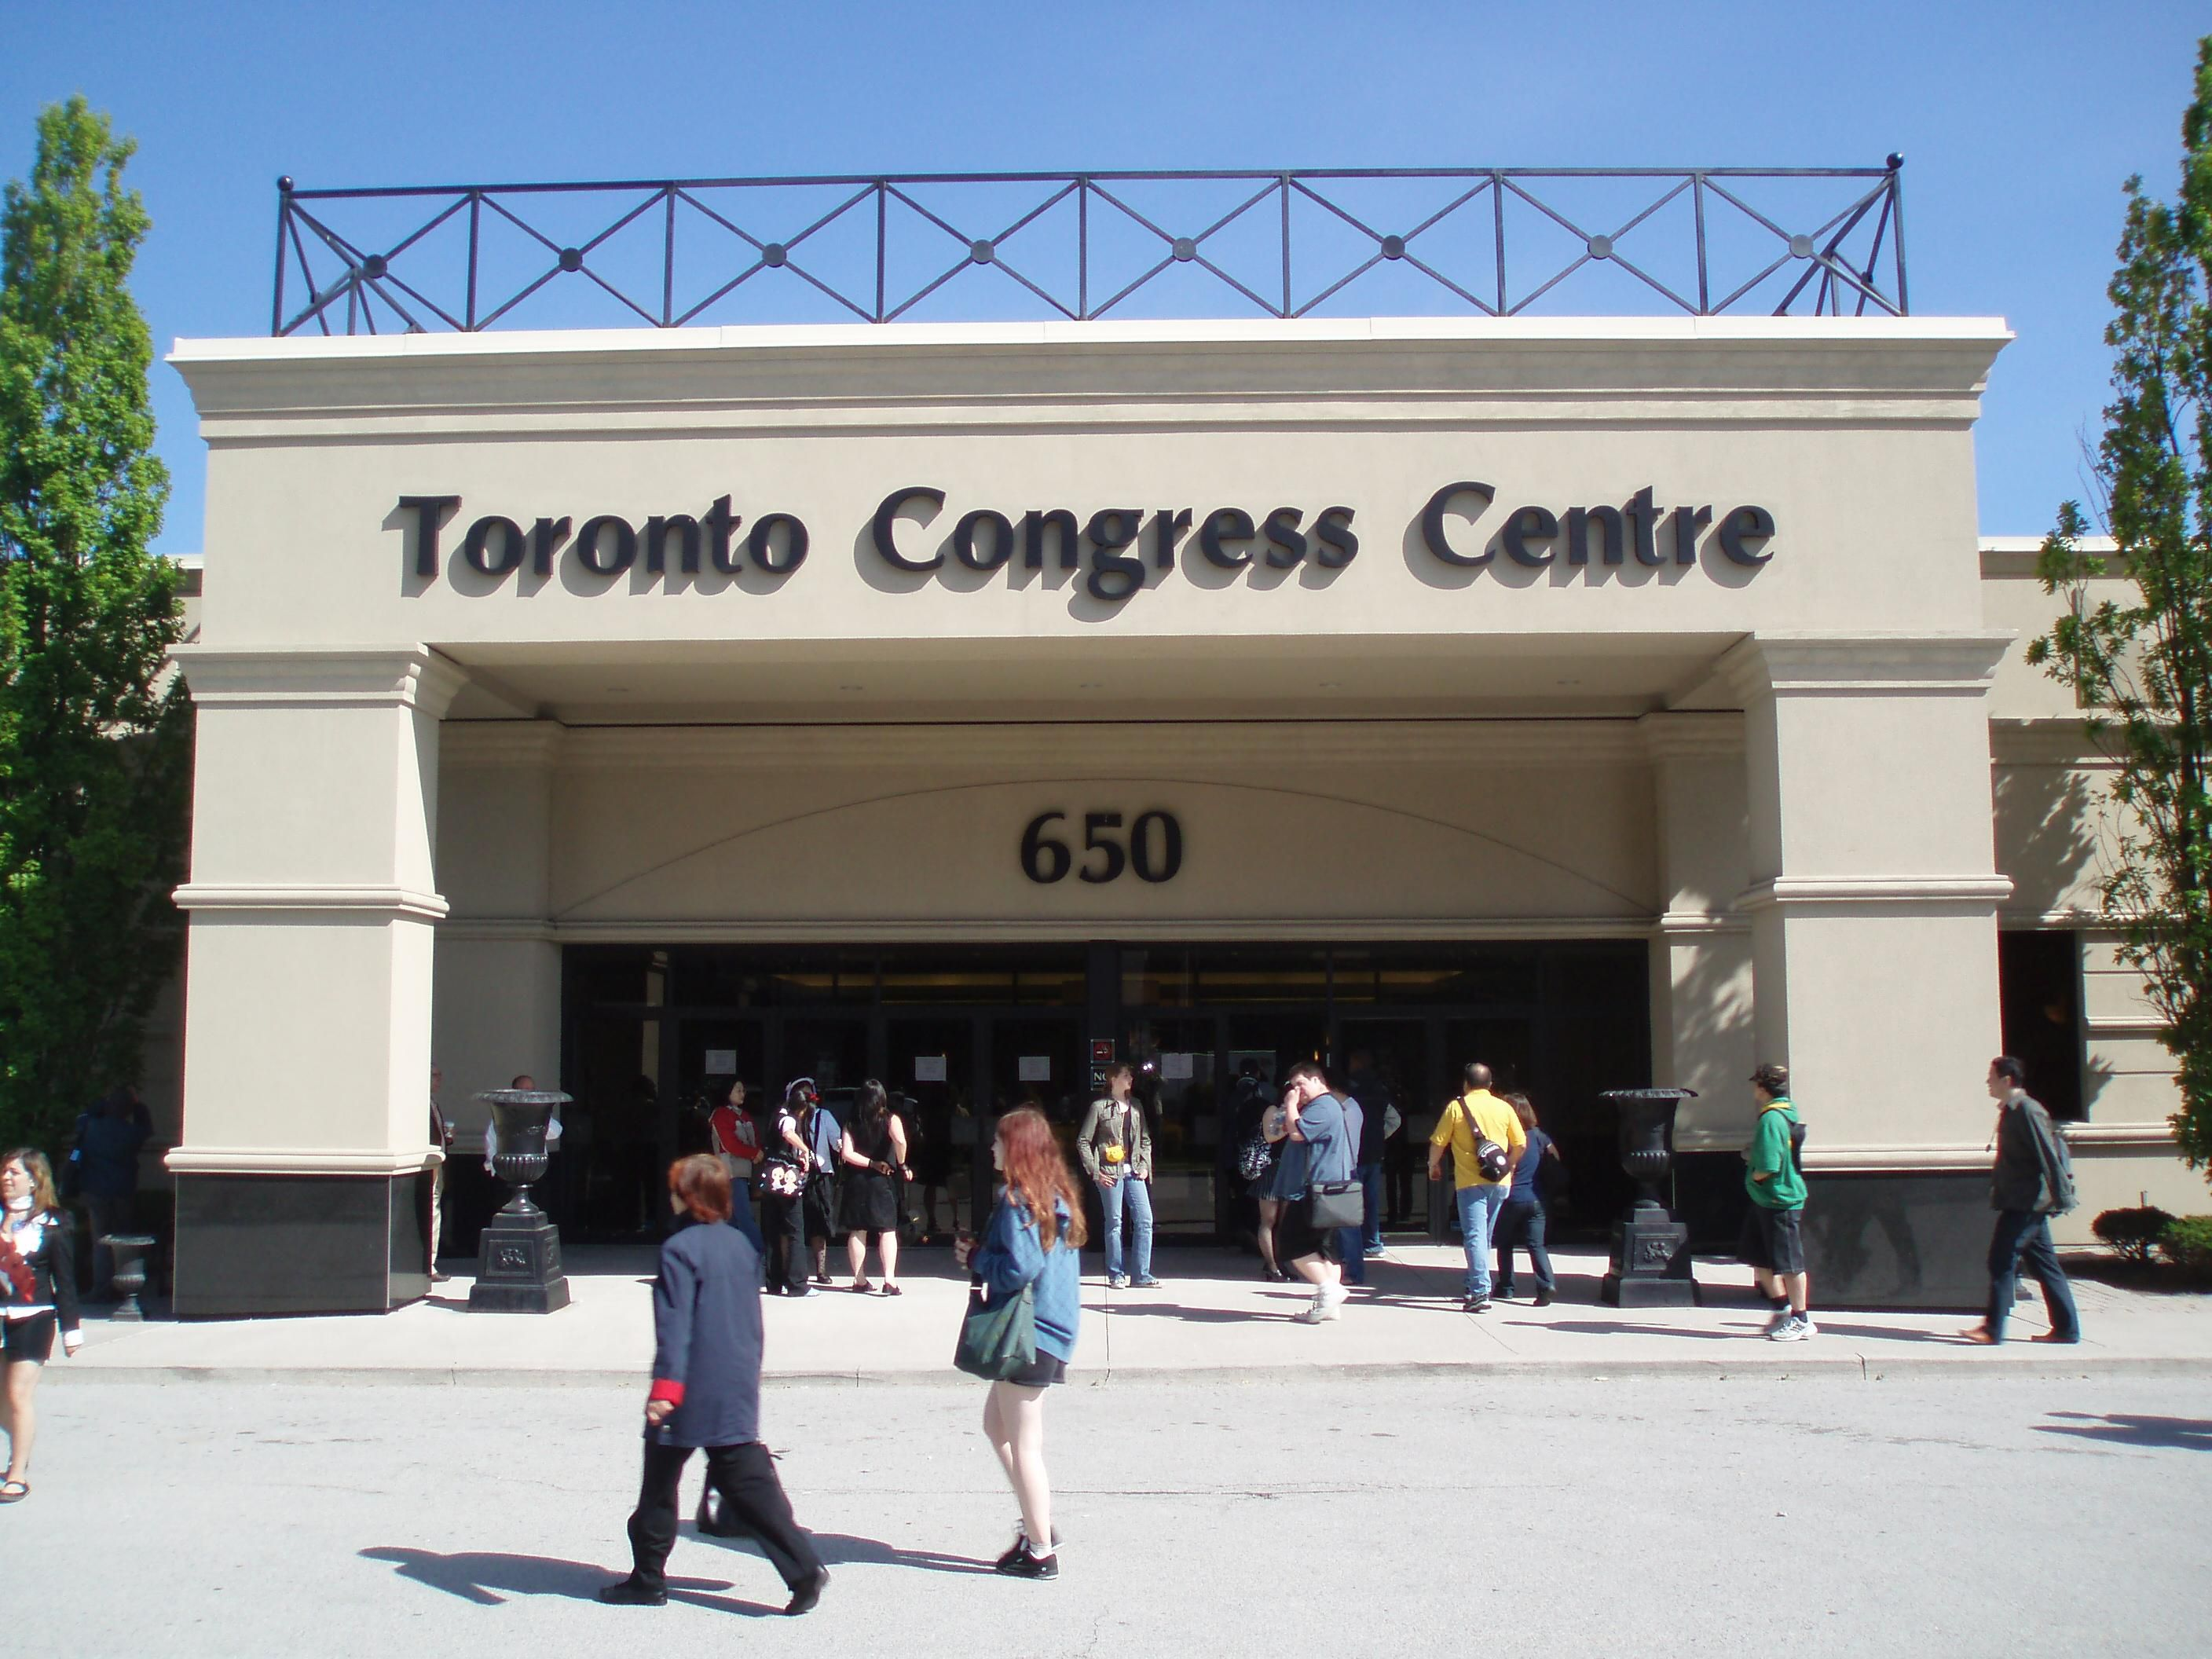 Toronto Congress Centre - Walking Distance from Hotel